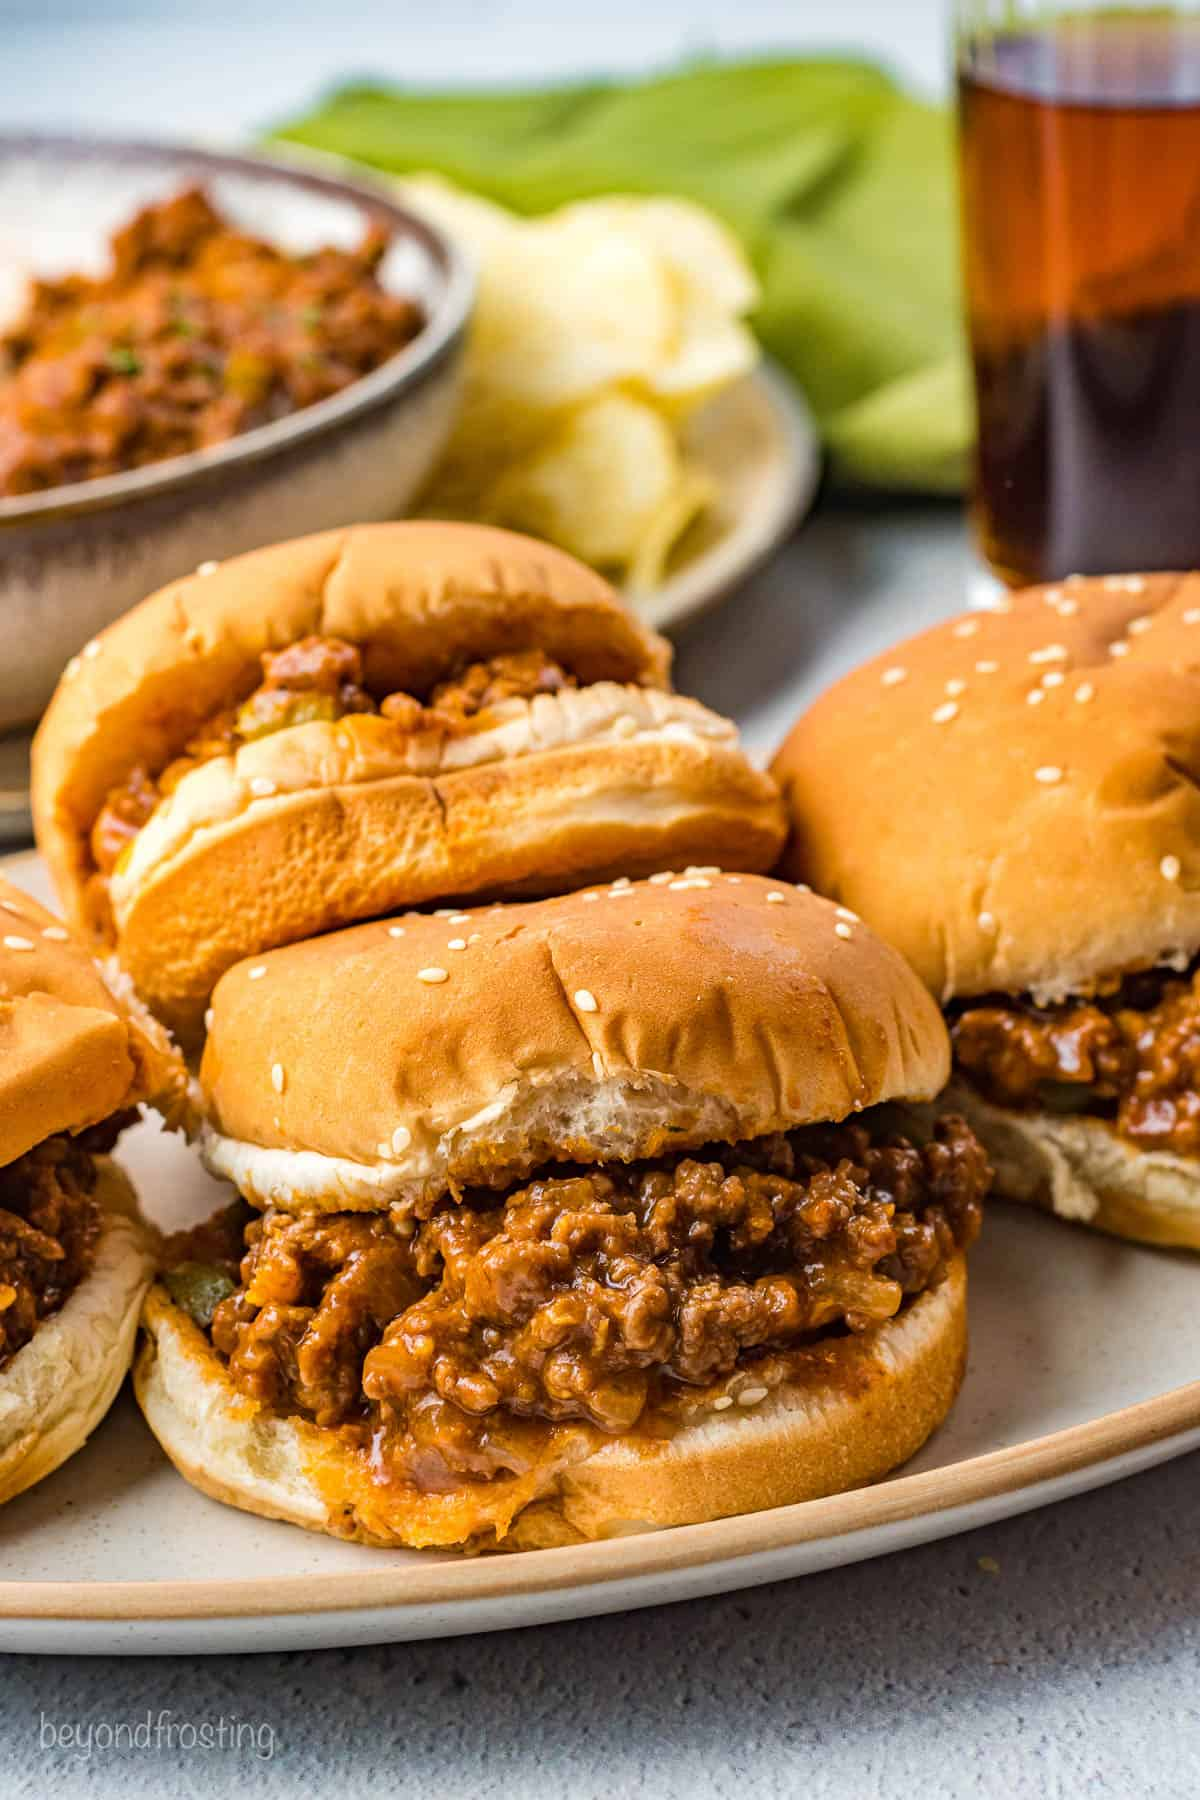 A side view of a platter of 4 finished Sloppy Joes.